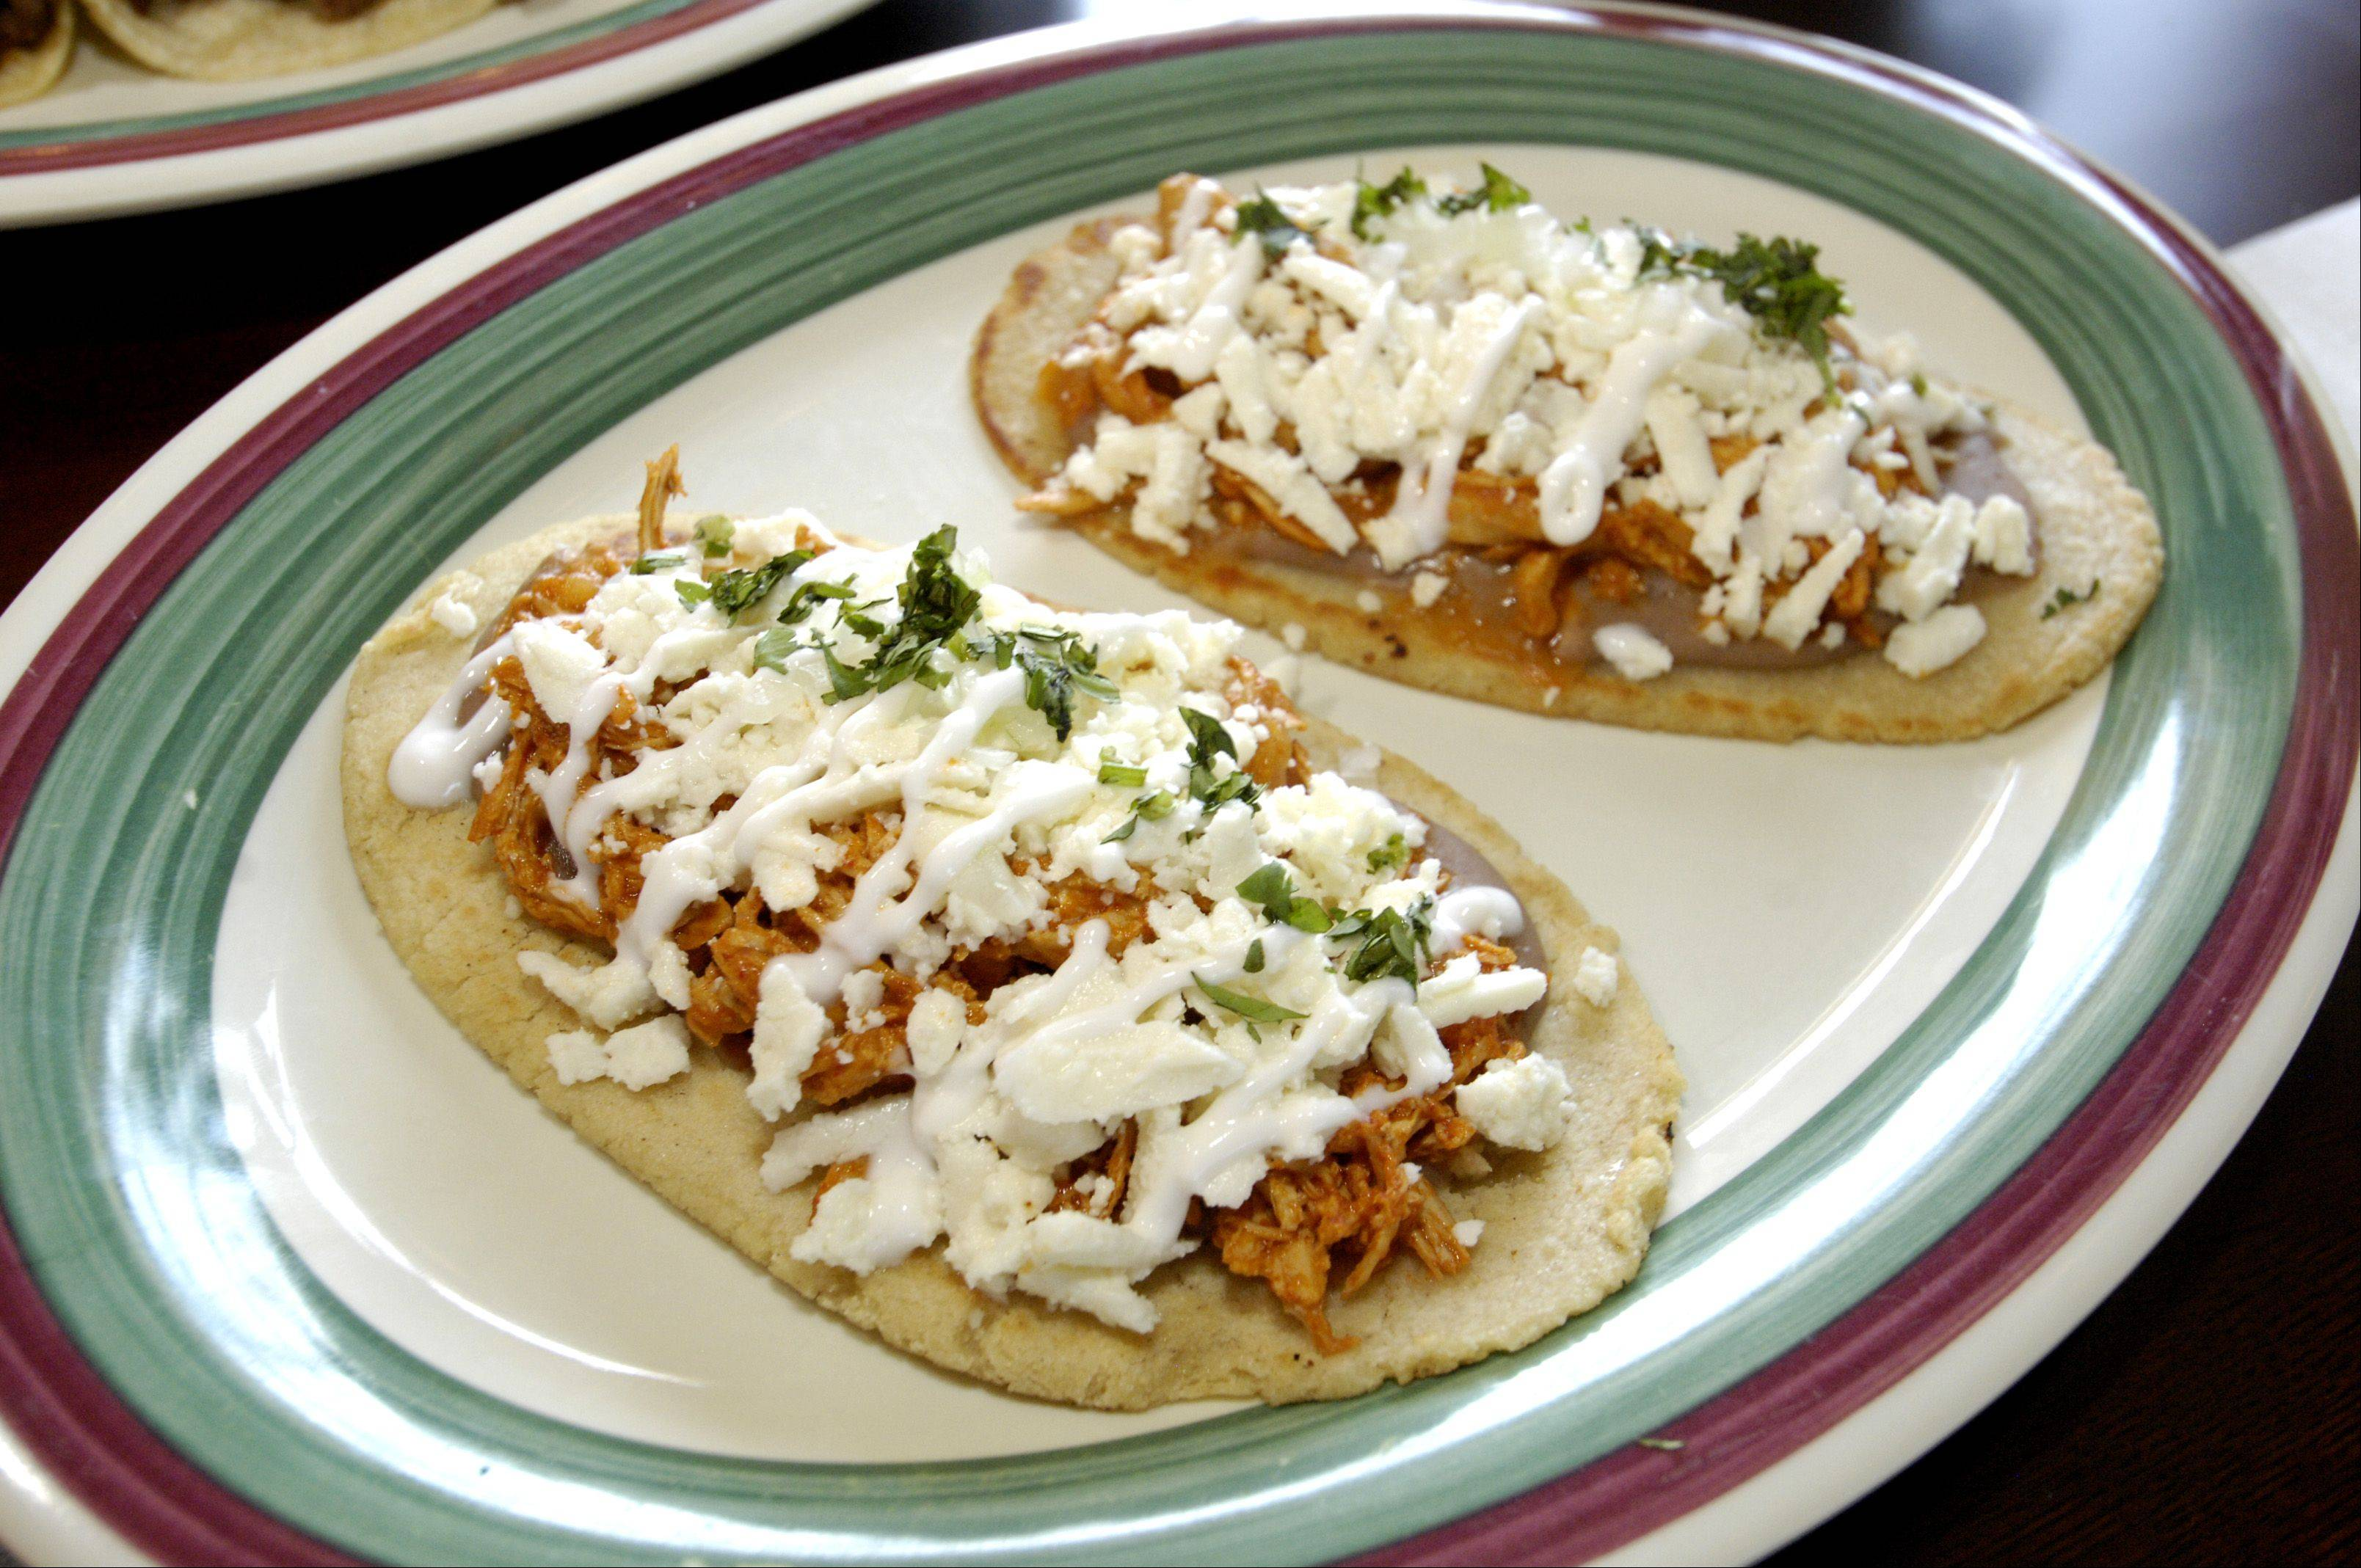 Changarro features shareable plates, like these memelitas tinga.